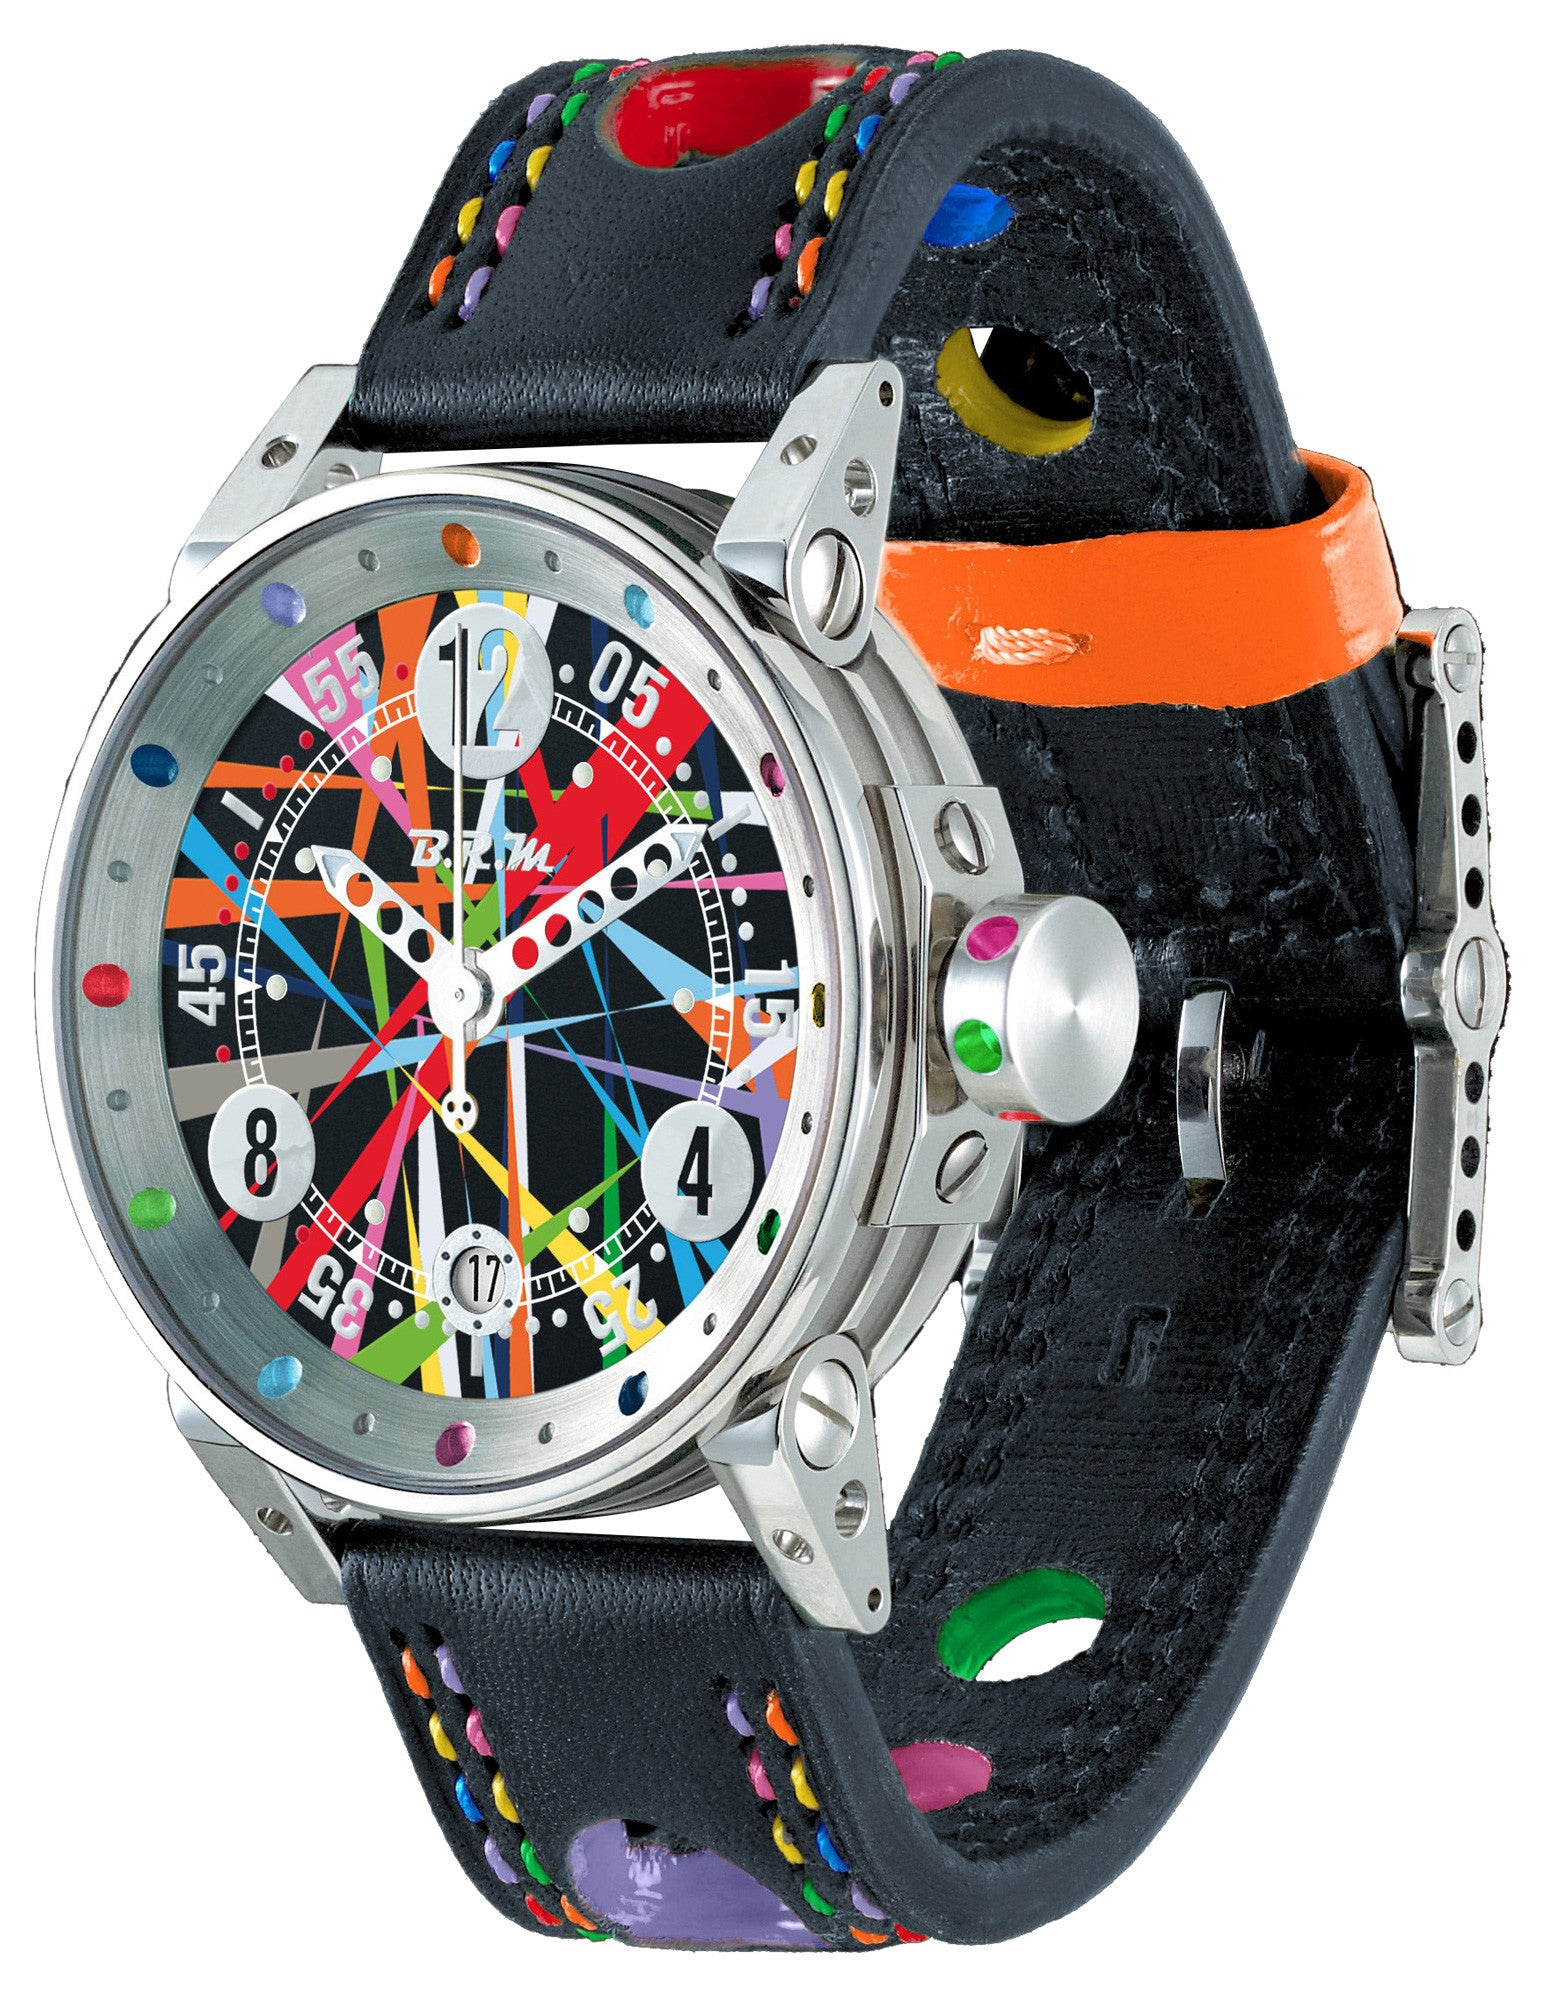 B.R.M Watch Art Car V7-38 Limited Edition